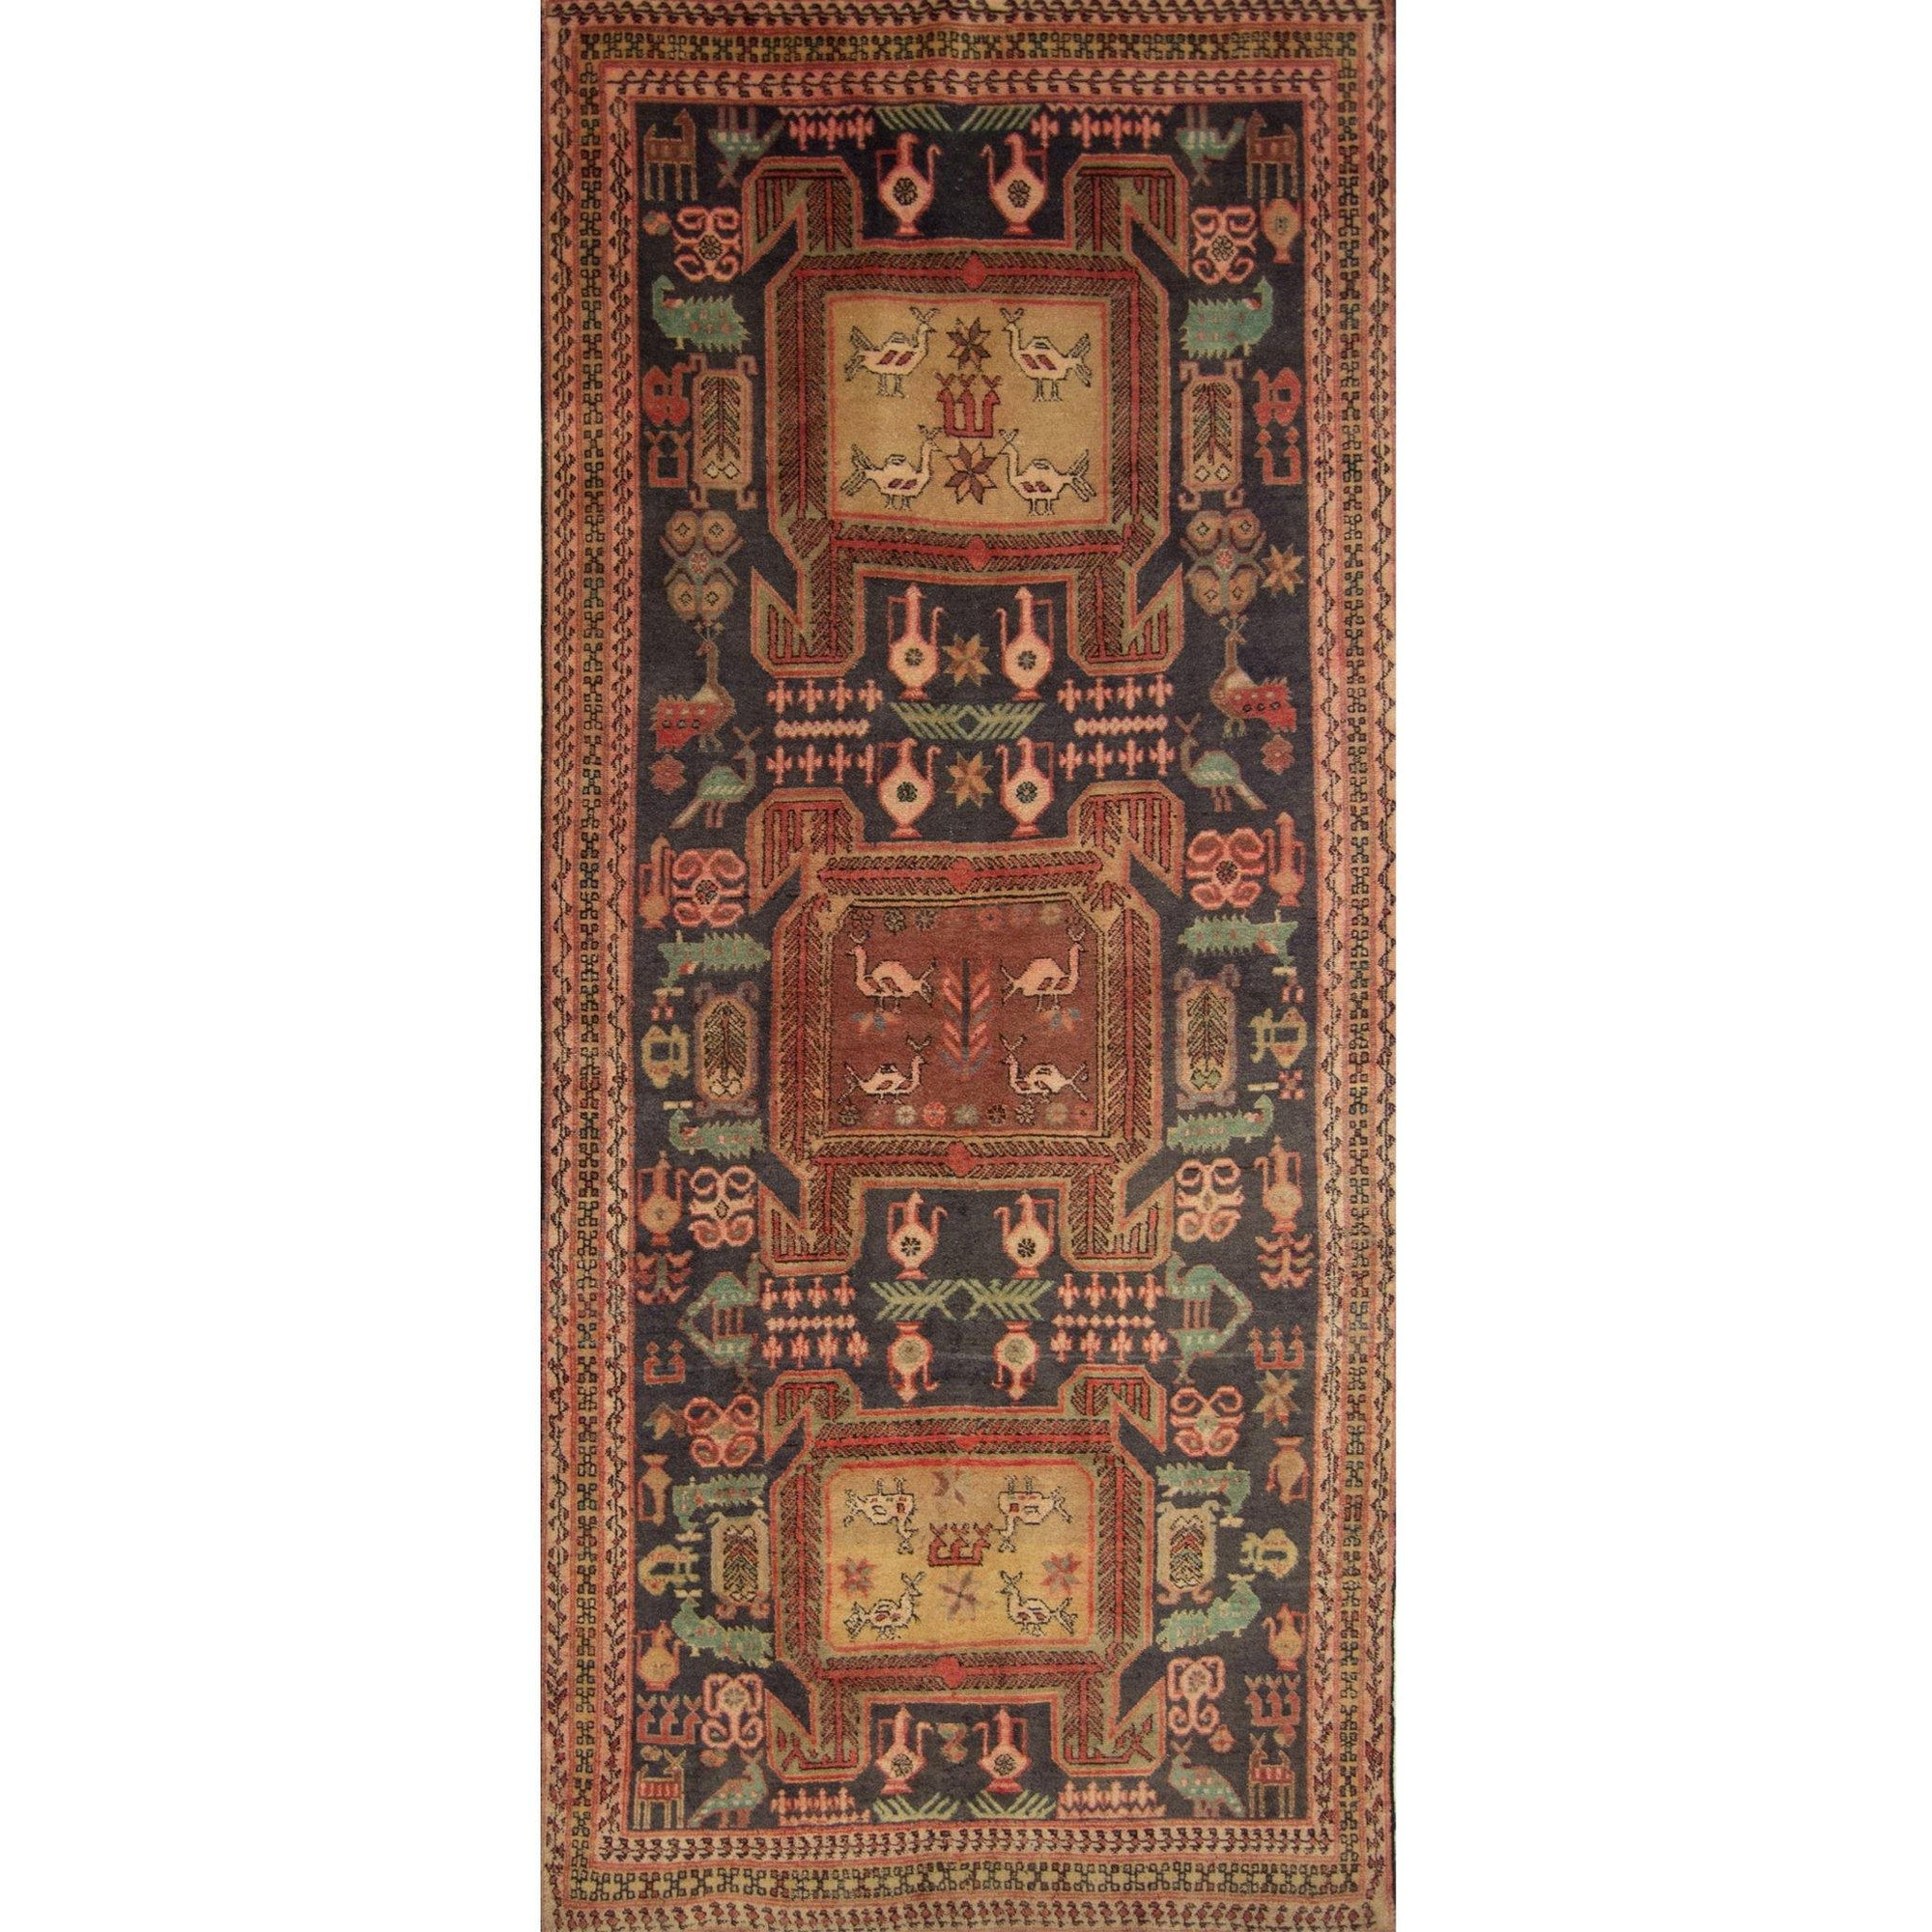 Vintage Fine Persian Hand-knotted Sarab-Azerbaijan Runner 132cm x 309cm Persian-Rug | House-of-Haghi | NewMarket | Auckland | NZ | Handmade Persian Rugs | Hand Knotted Persian Rugs